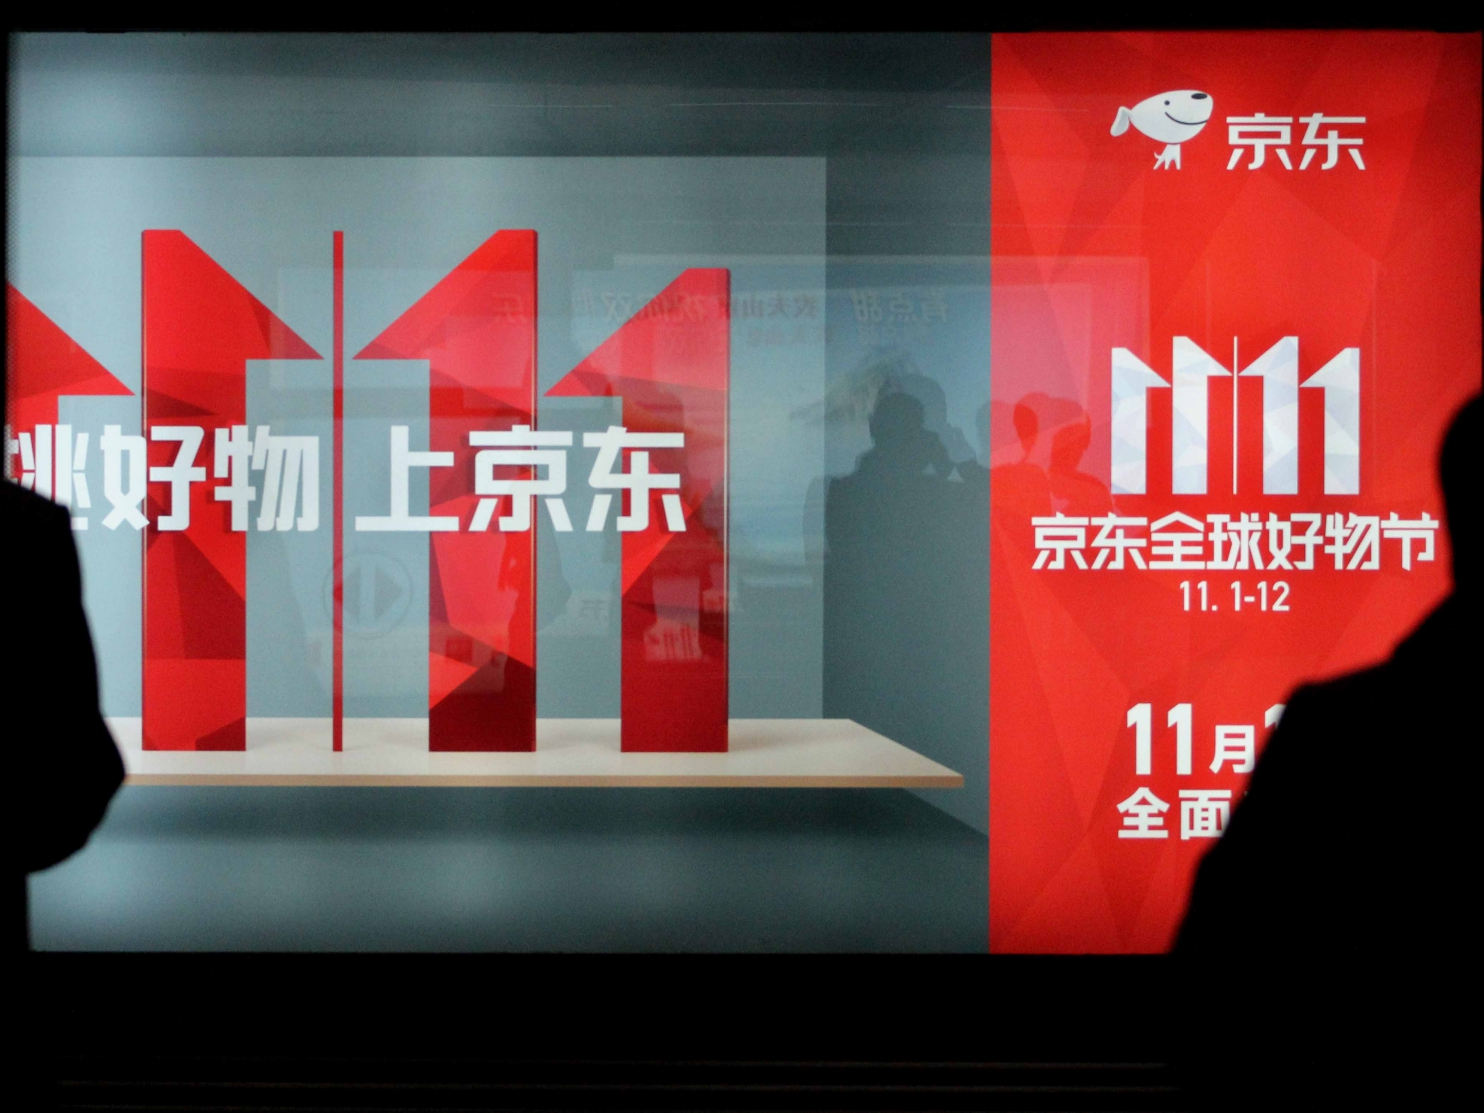 China's second largest e-commerce firm just showed Alibaba has serious competition